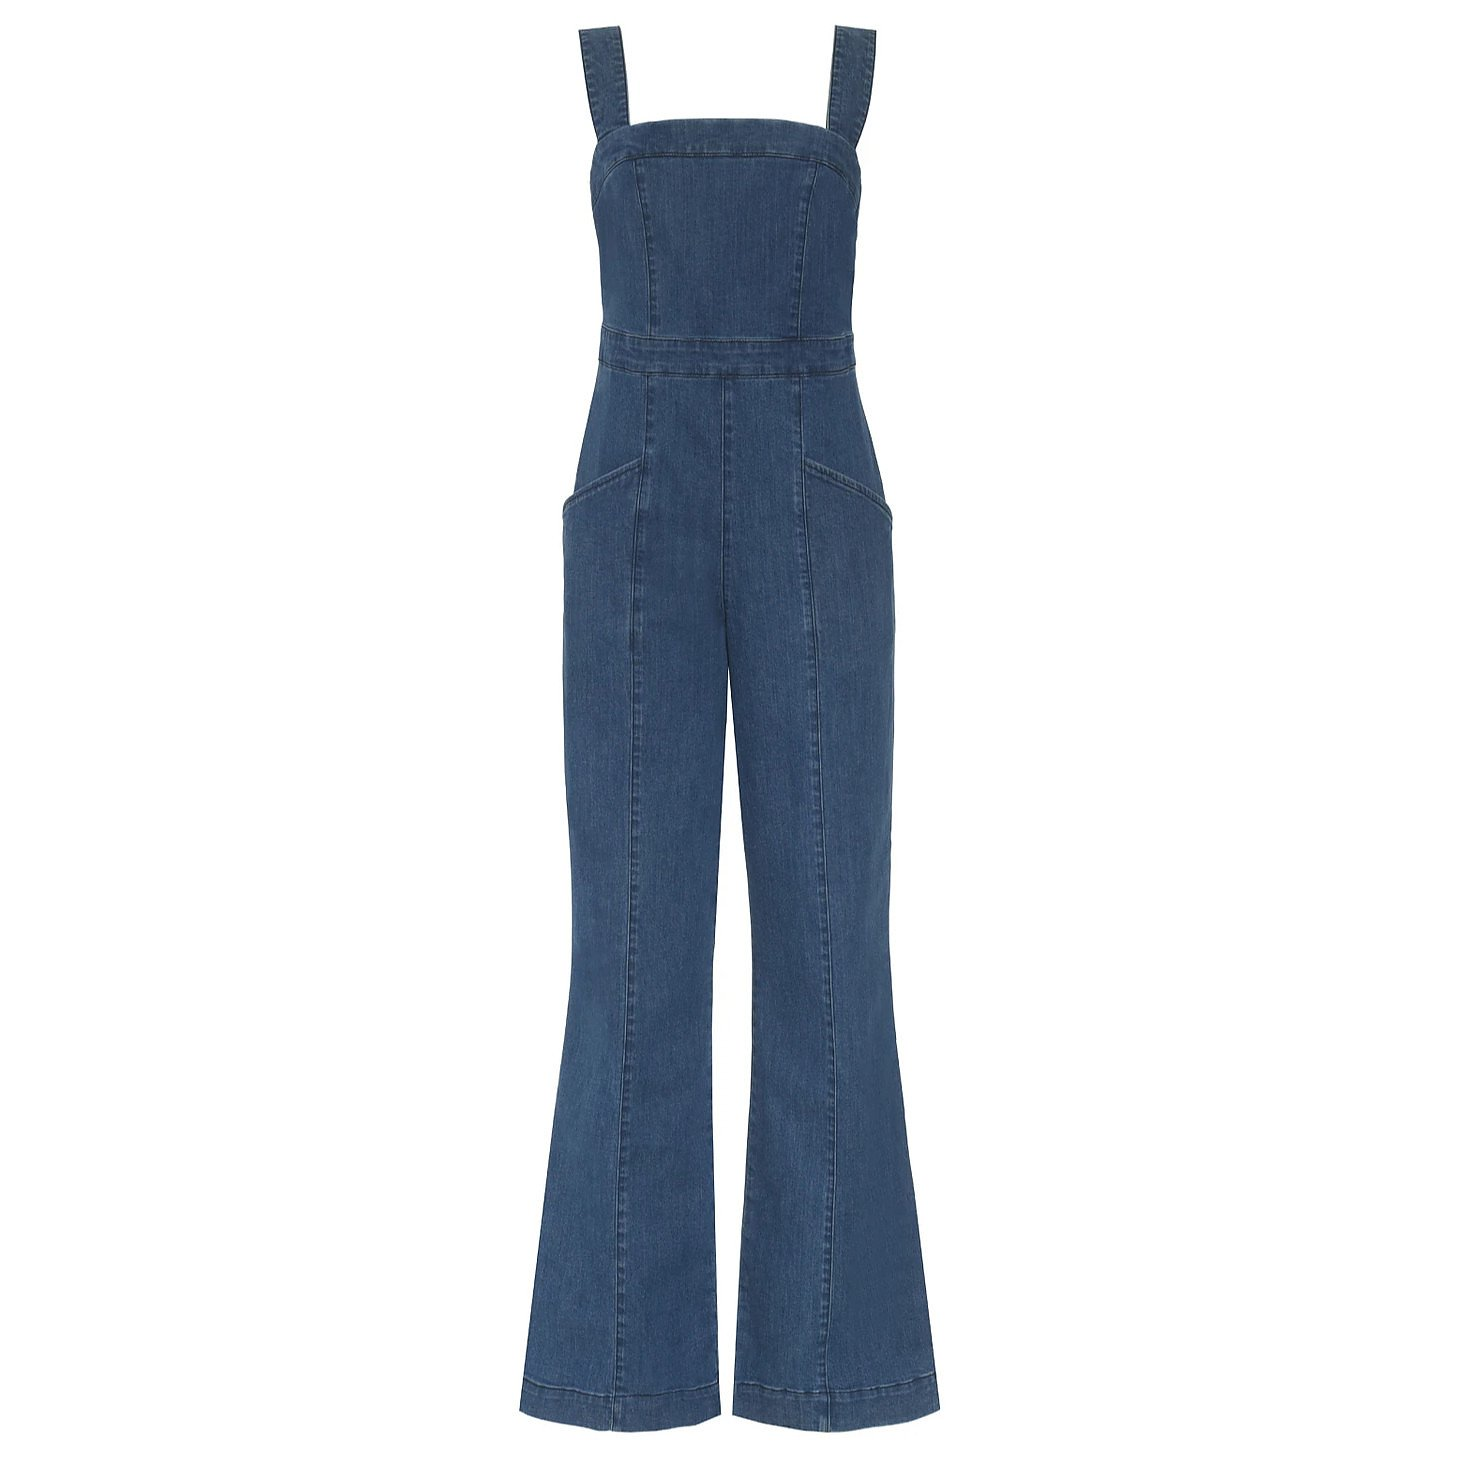 Rock The Jumpsuit Sienna Dungarees